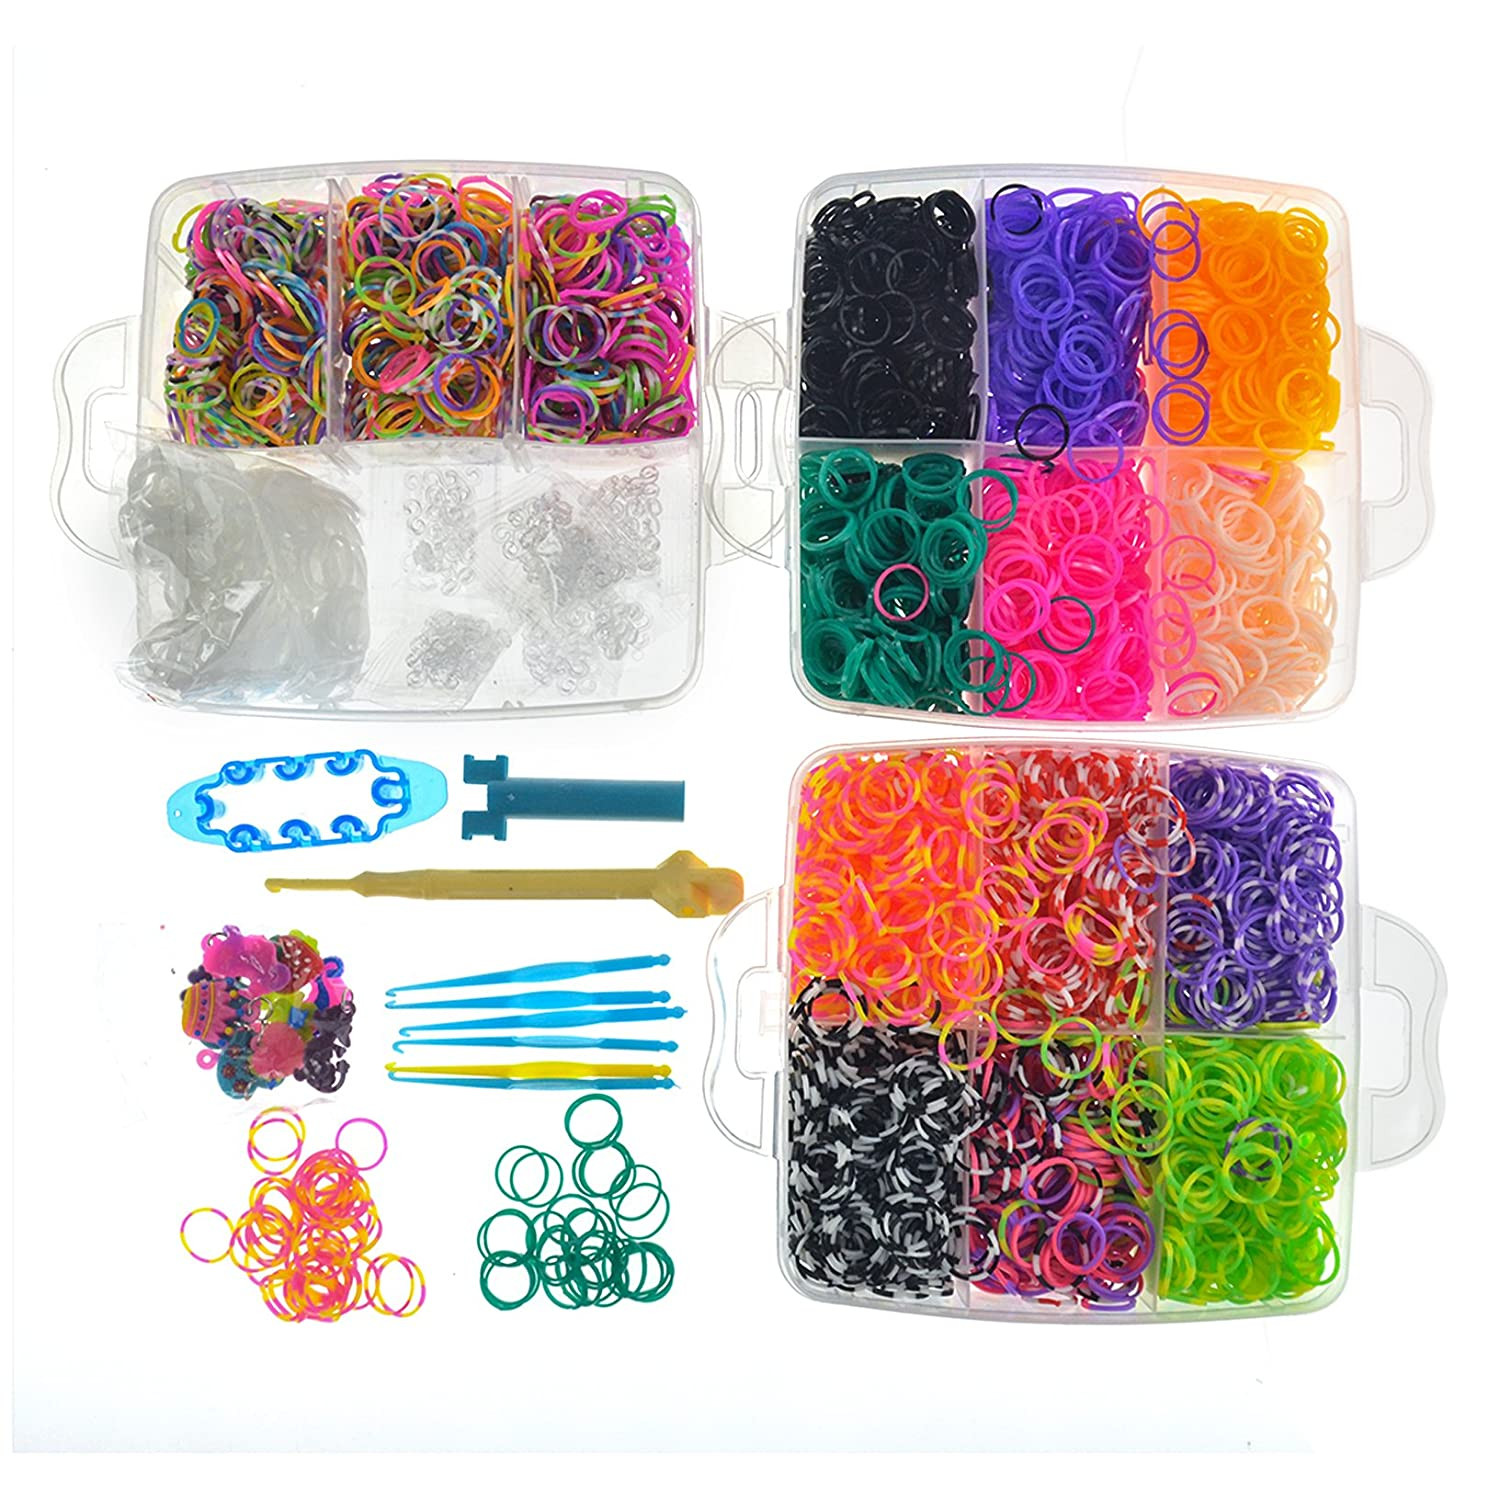 Toyofmine 4800 Colorful Rubber Band Bracelet Loom Refill Kit Fun DIY for Kids Rubber Band Activities with Storage Case